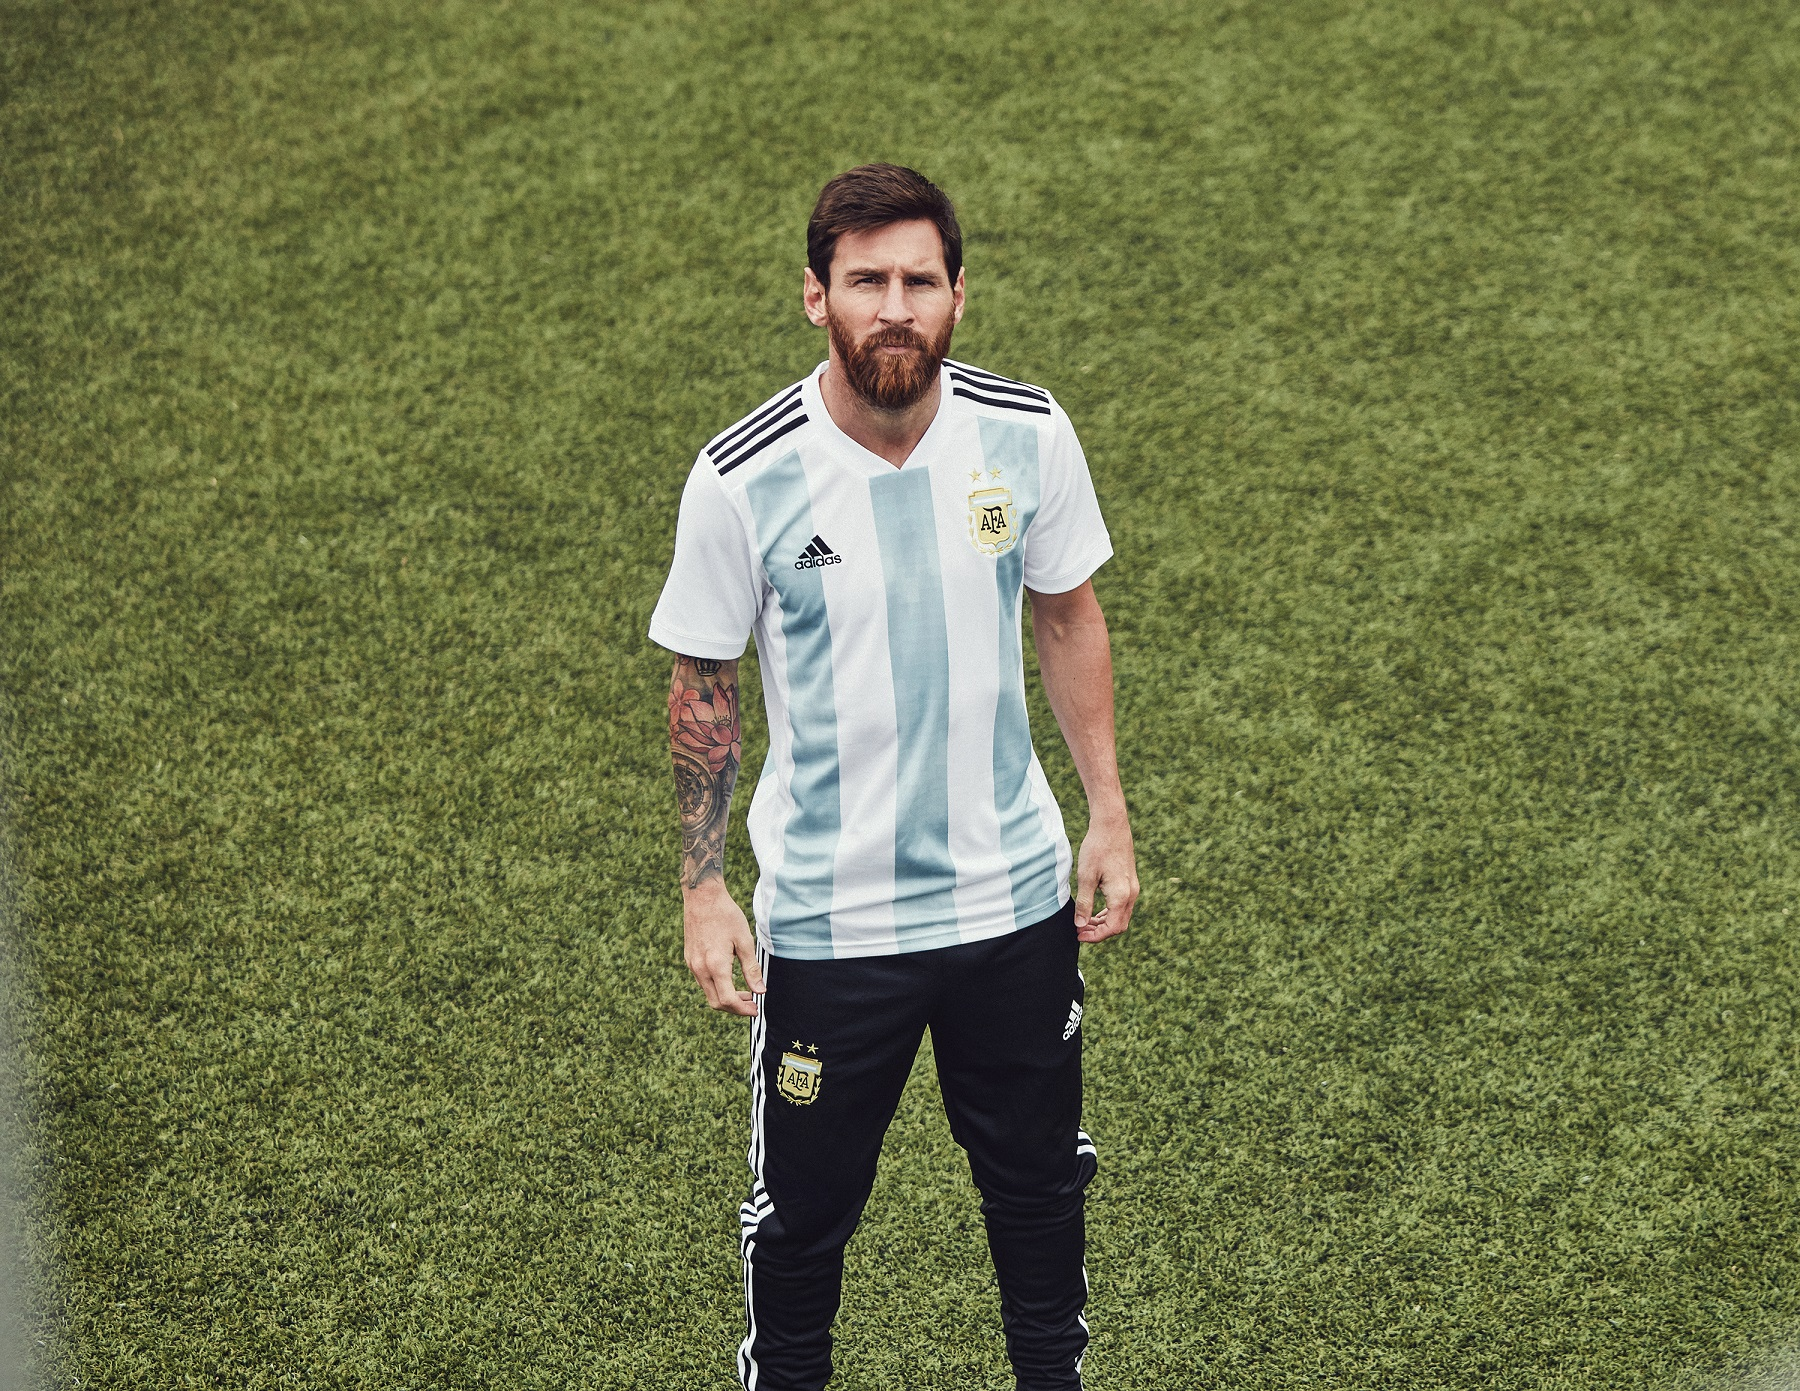 Argentina's home shirt for the 2018 World Cup in Russia